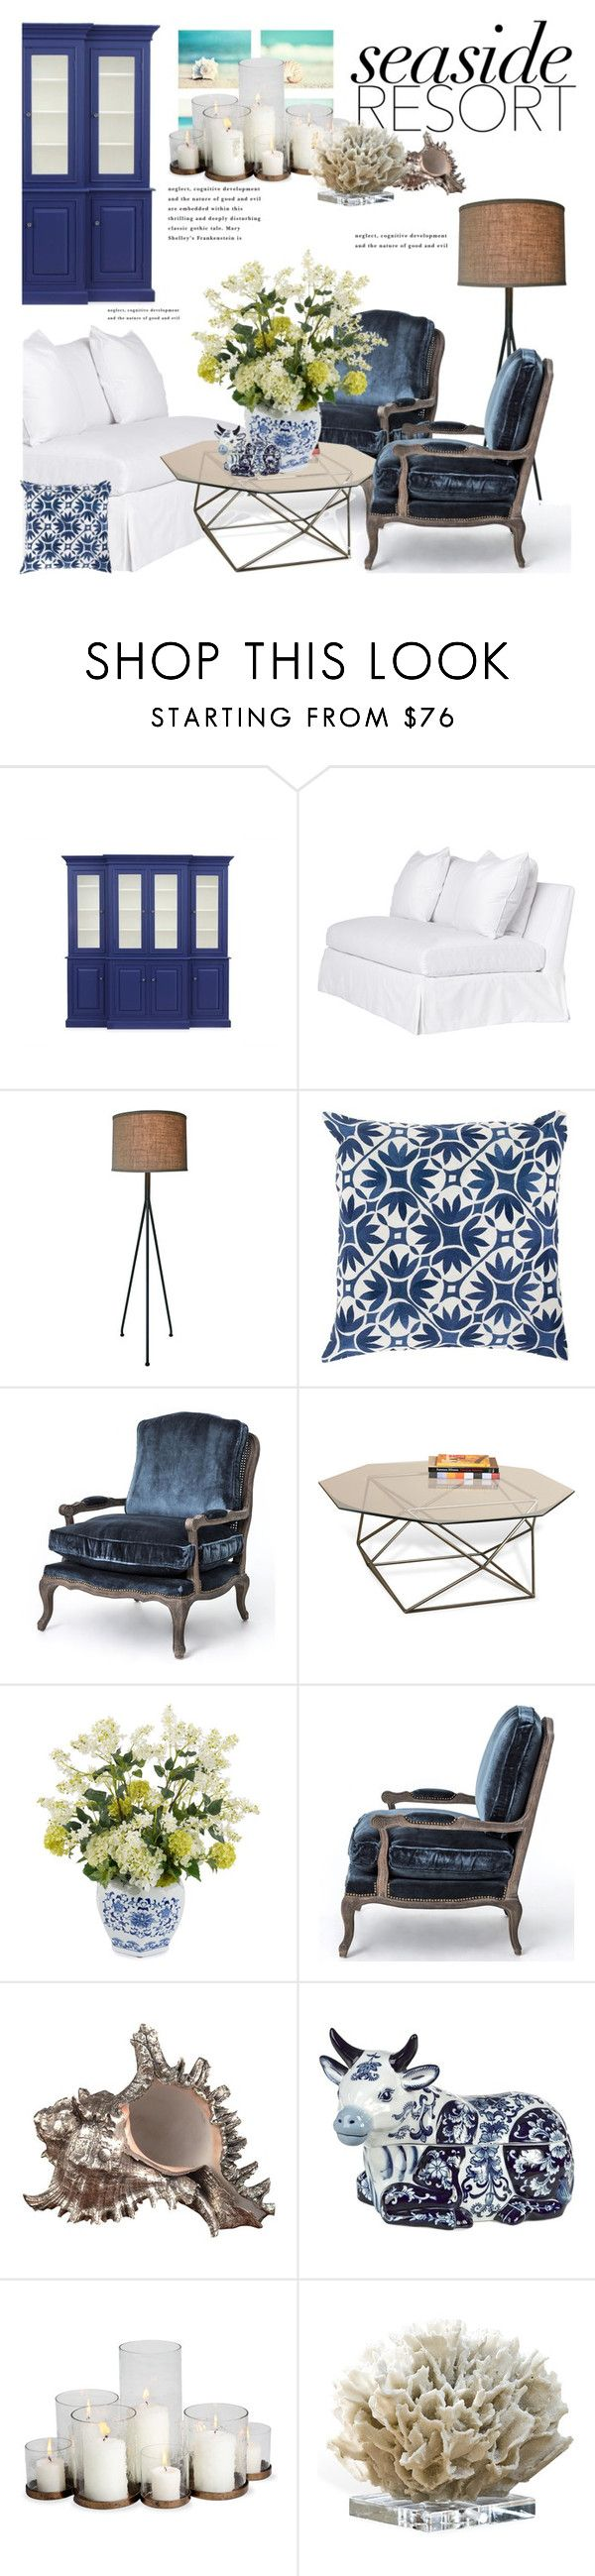 """Seaside Resort"" by janephoto on Polyvore"